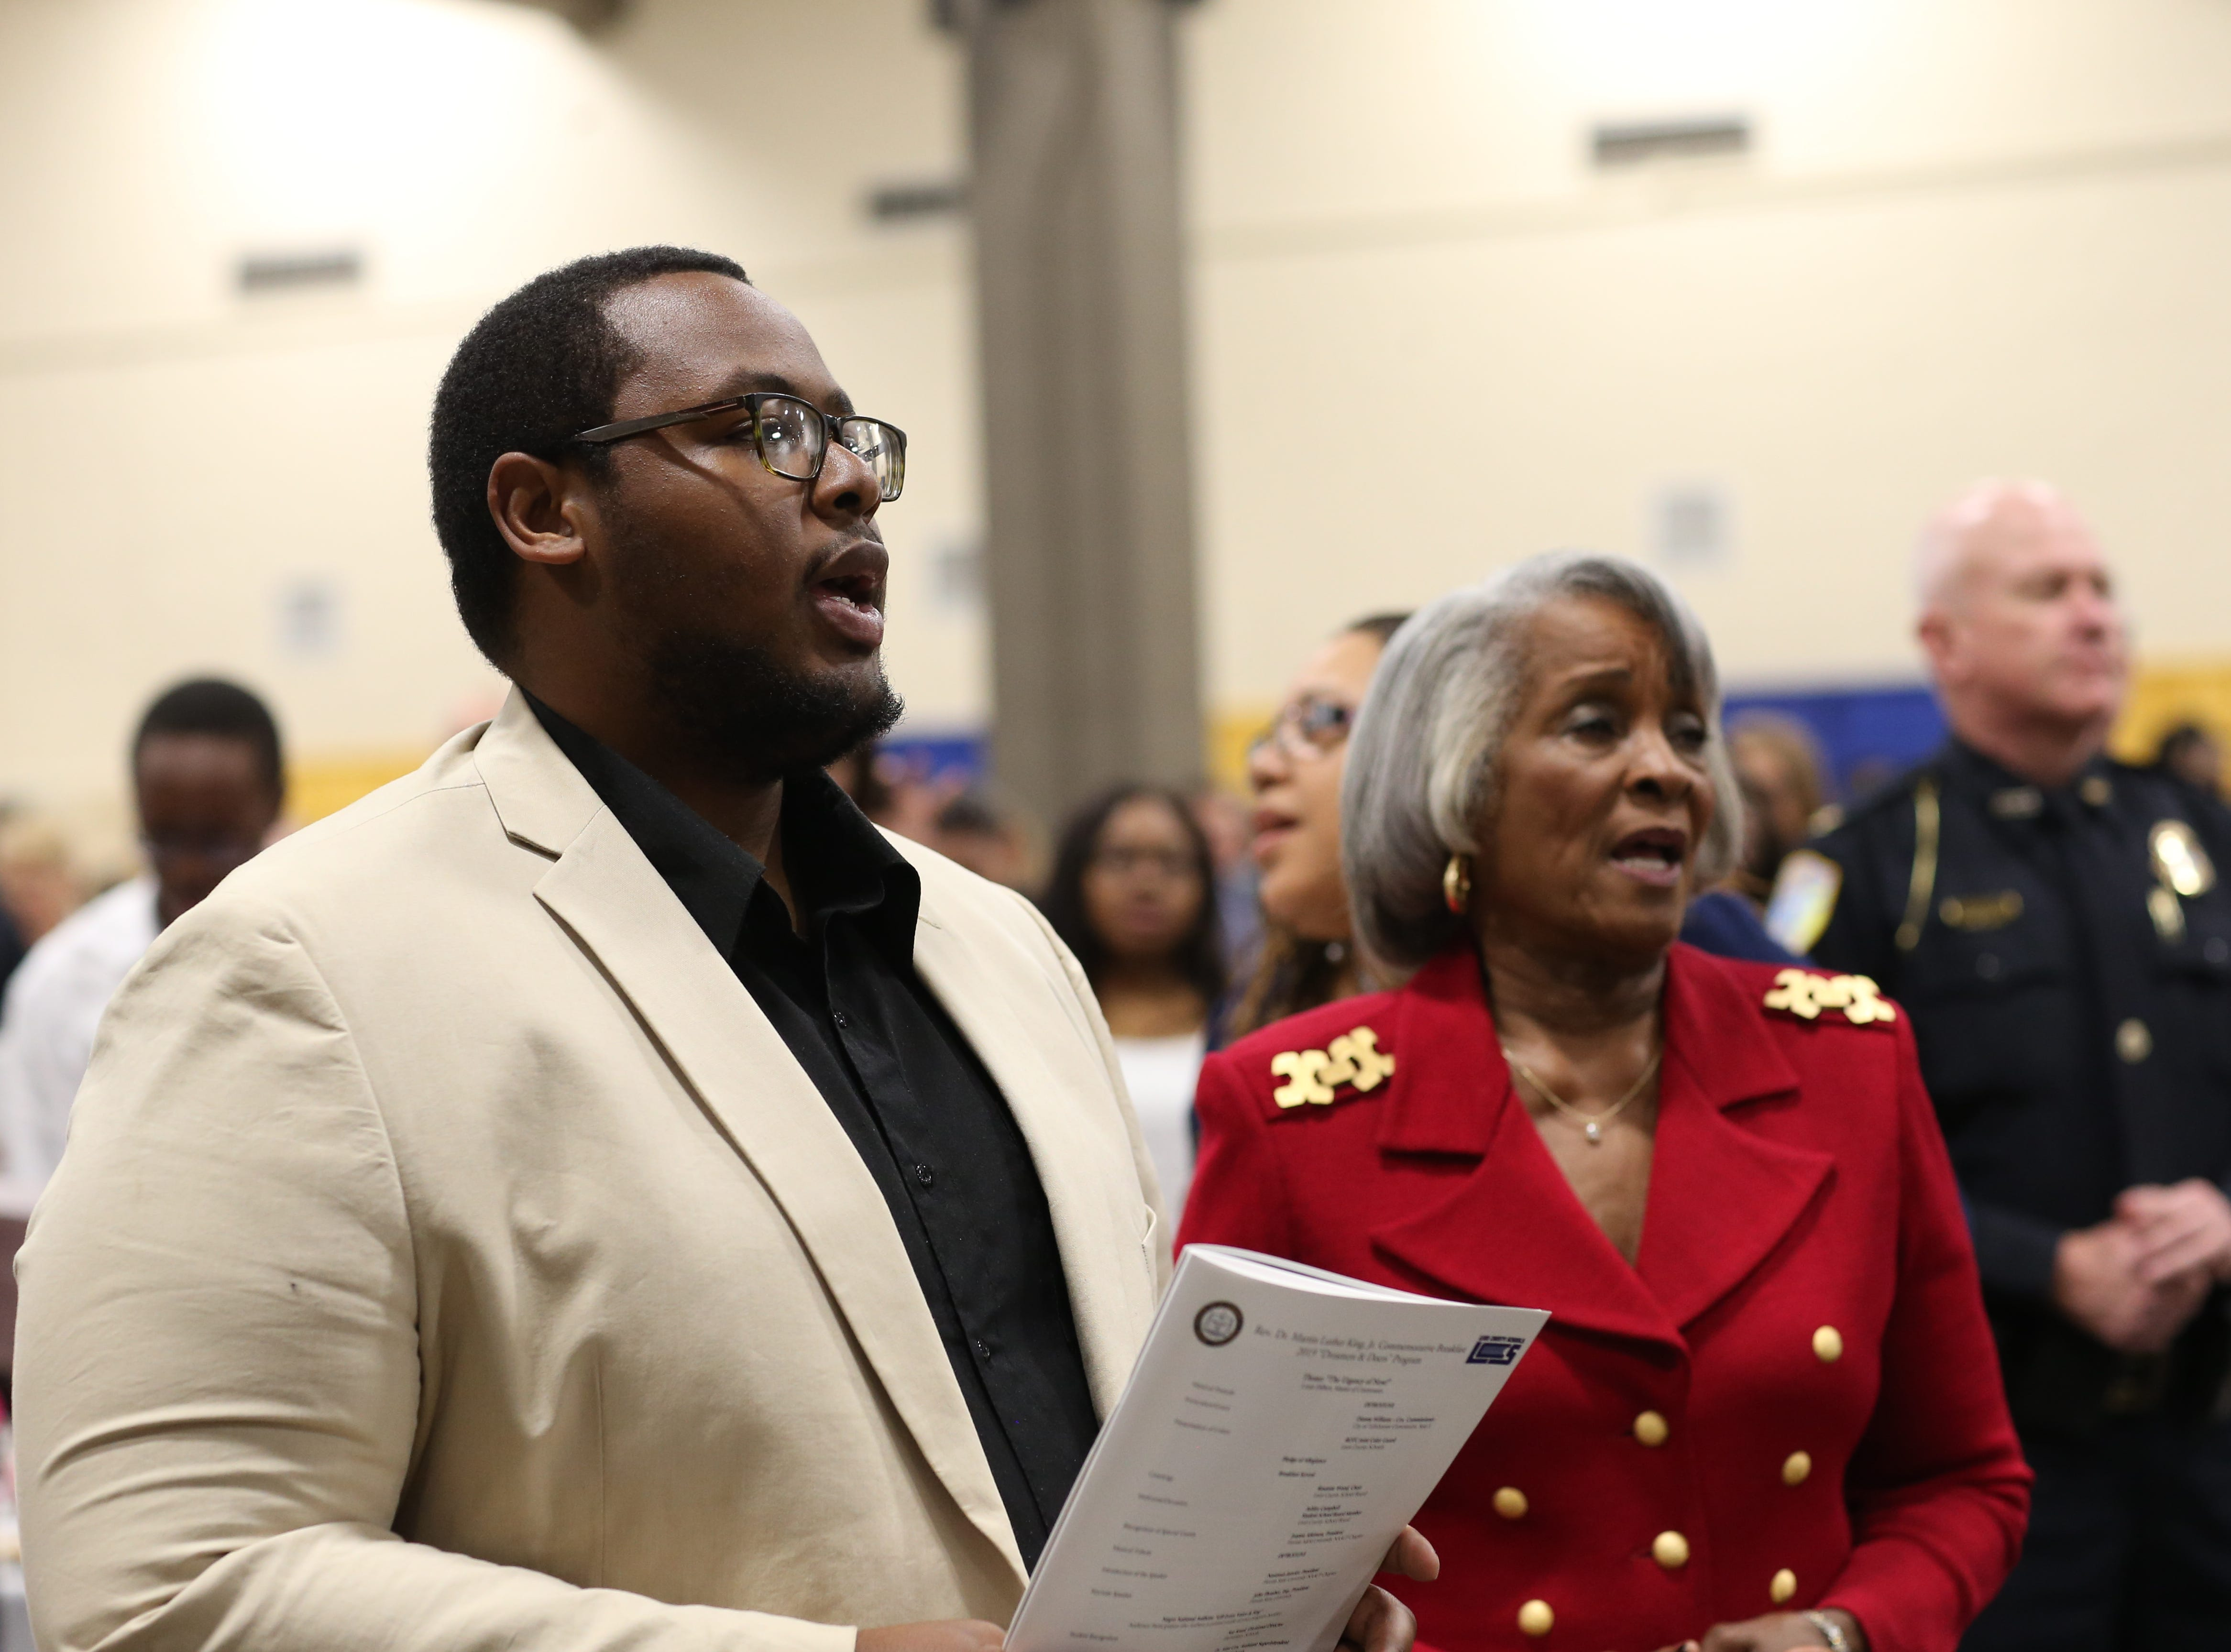 "Attendees join in singing the Negro National Anthem ""Lift Every Voice and Sing"" played during the Martin Luther King Jr. commemorative breakfast at Donald L. Tucker Civic Center Friday, Jan. 18, 2019."